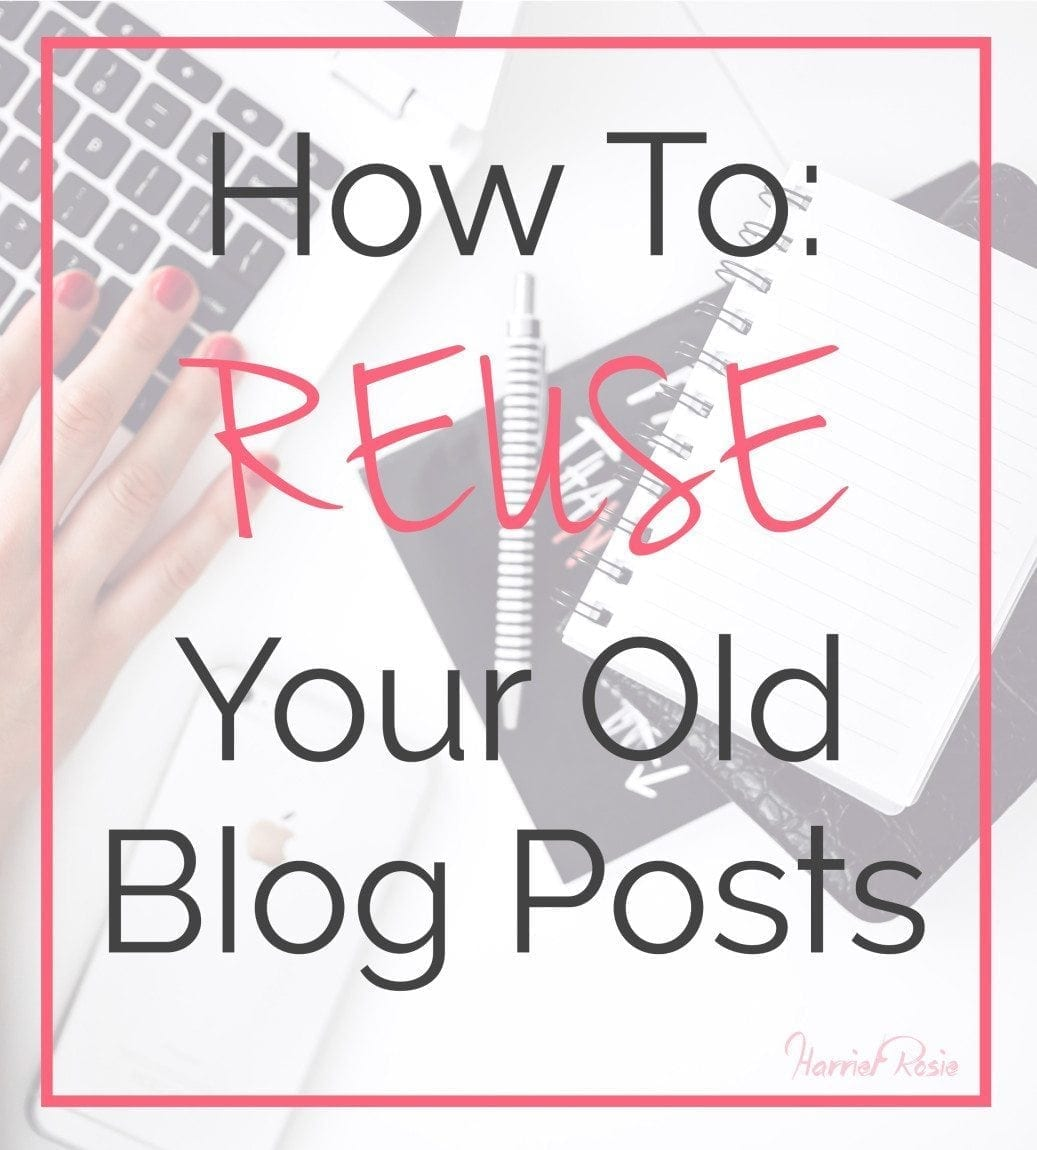 How to reuse old blog posts main image